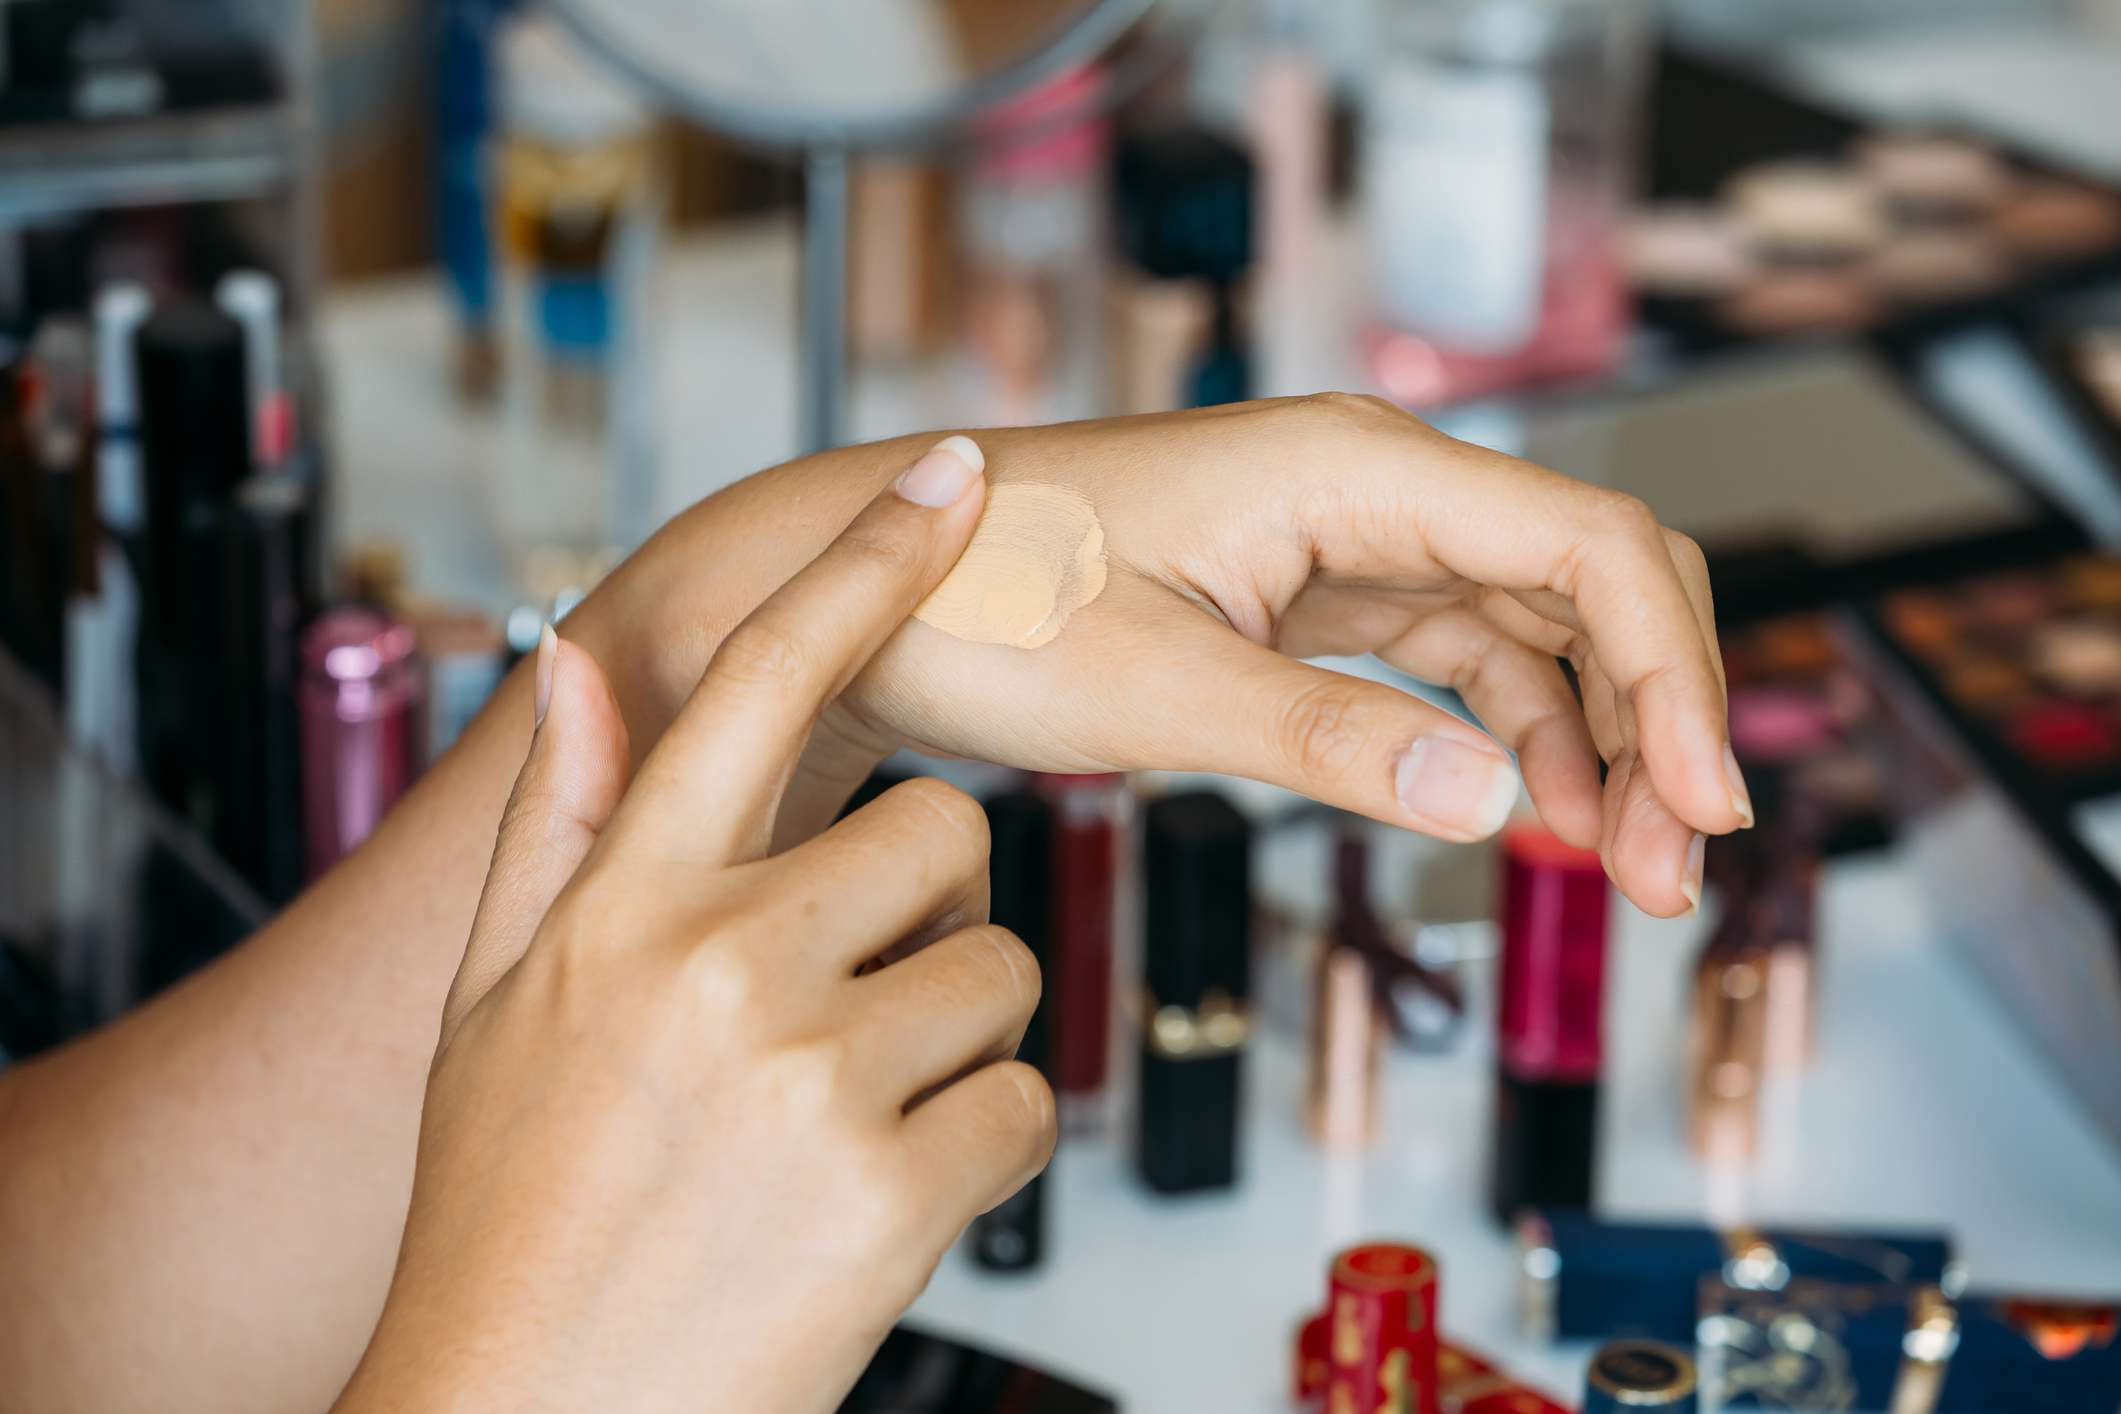 A woman applies concealer to her hand with cosmetics in the background.